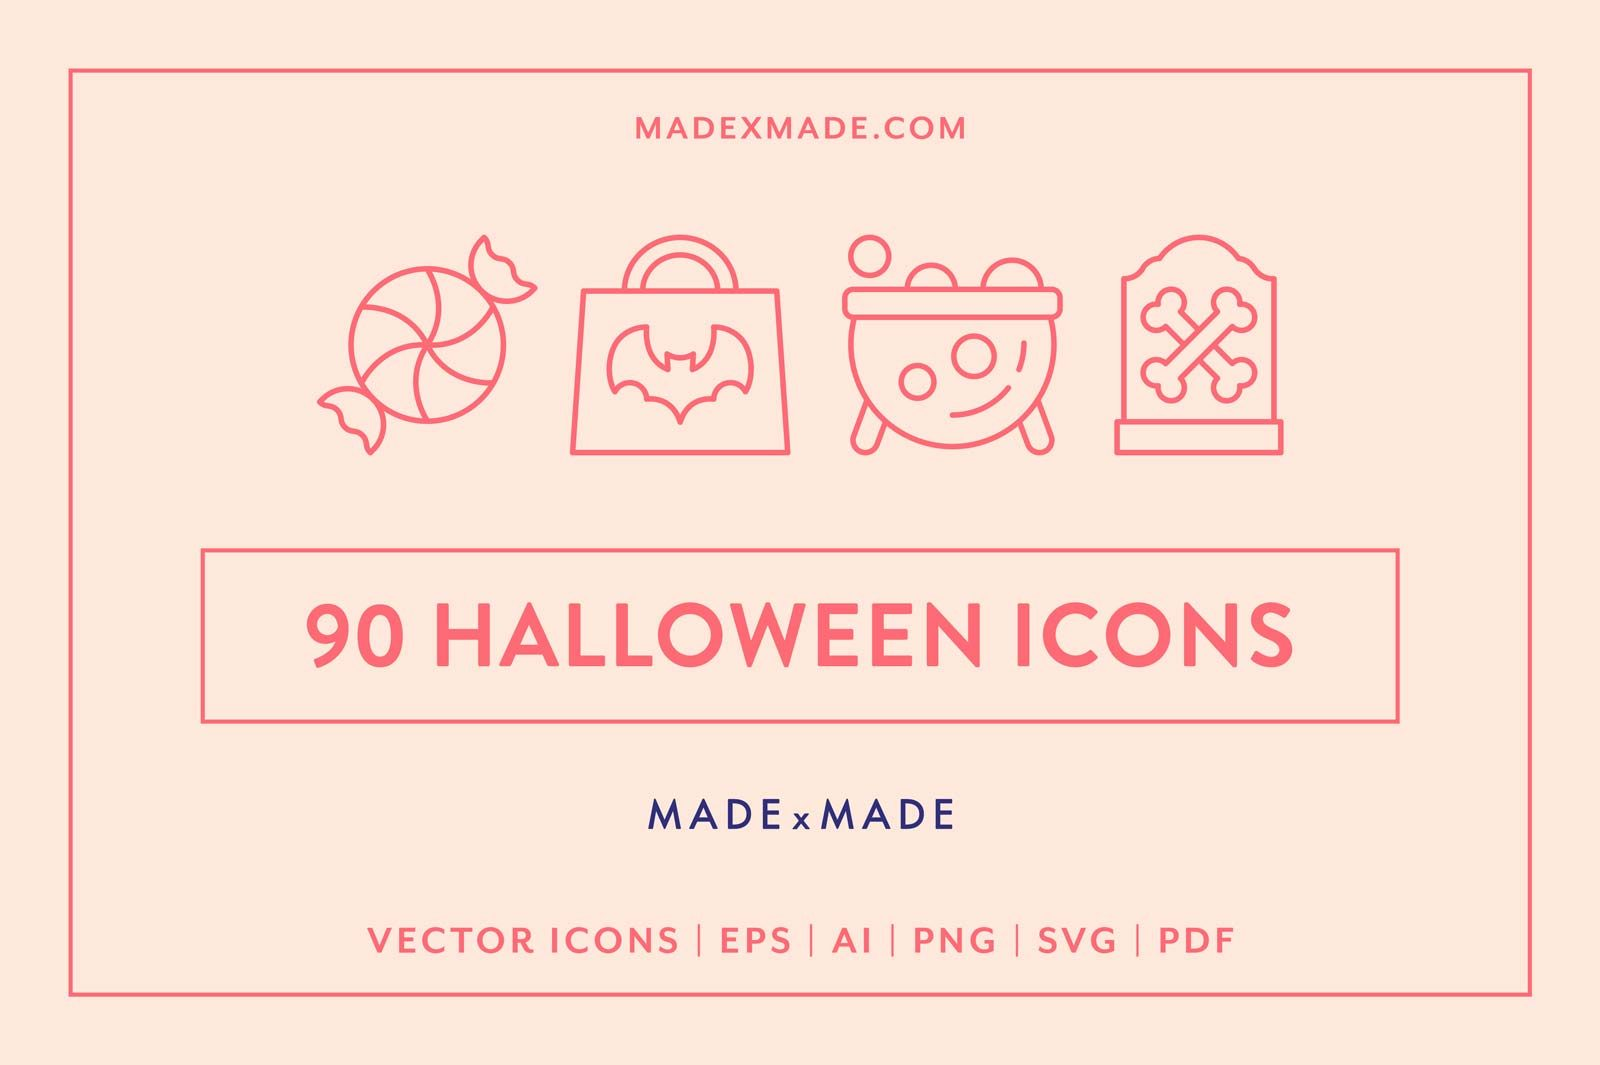 made x made icons halloween